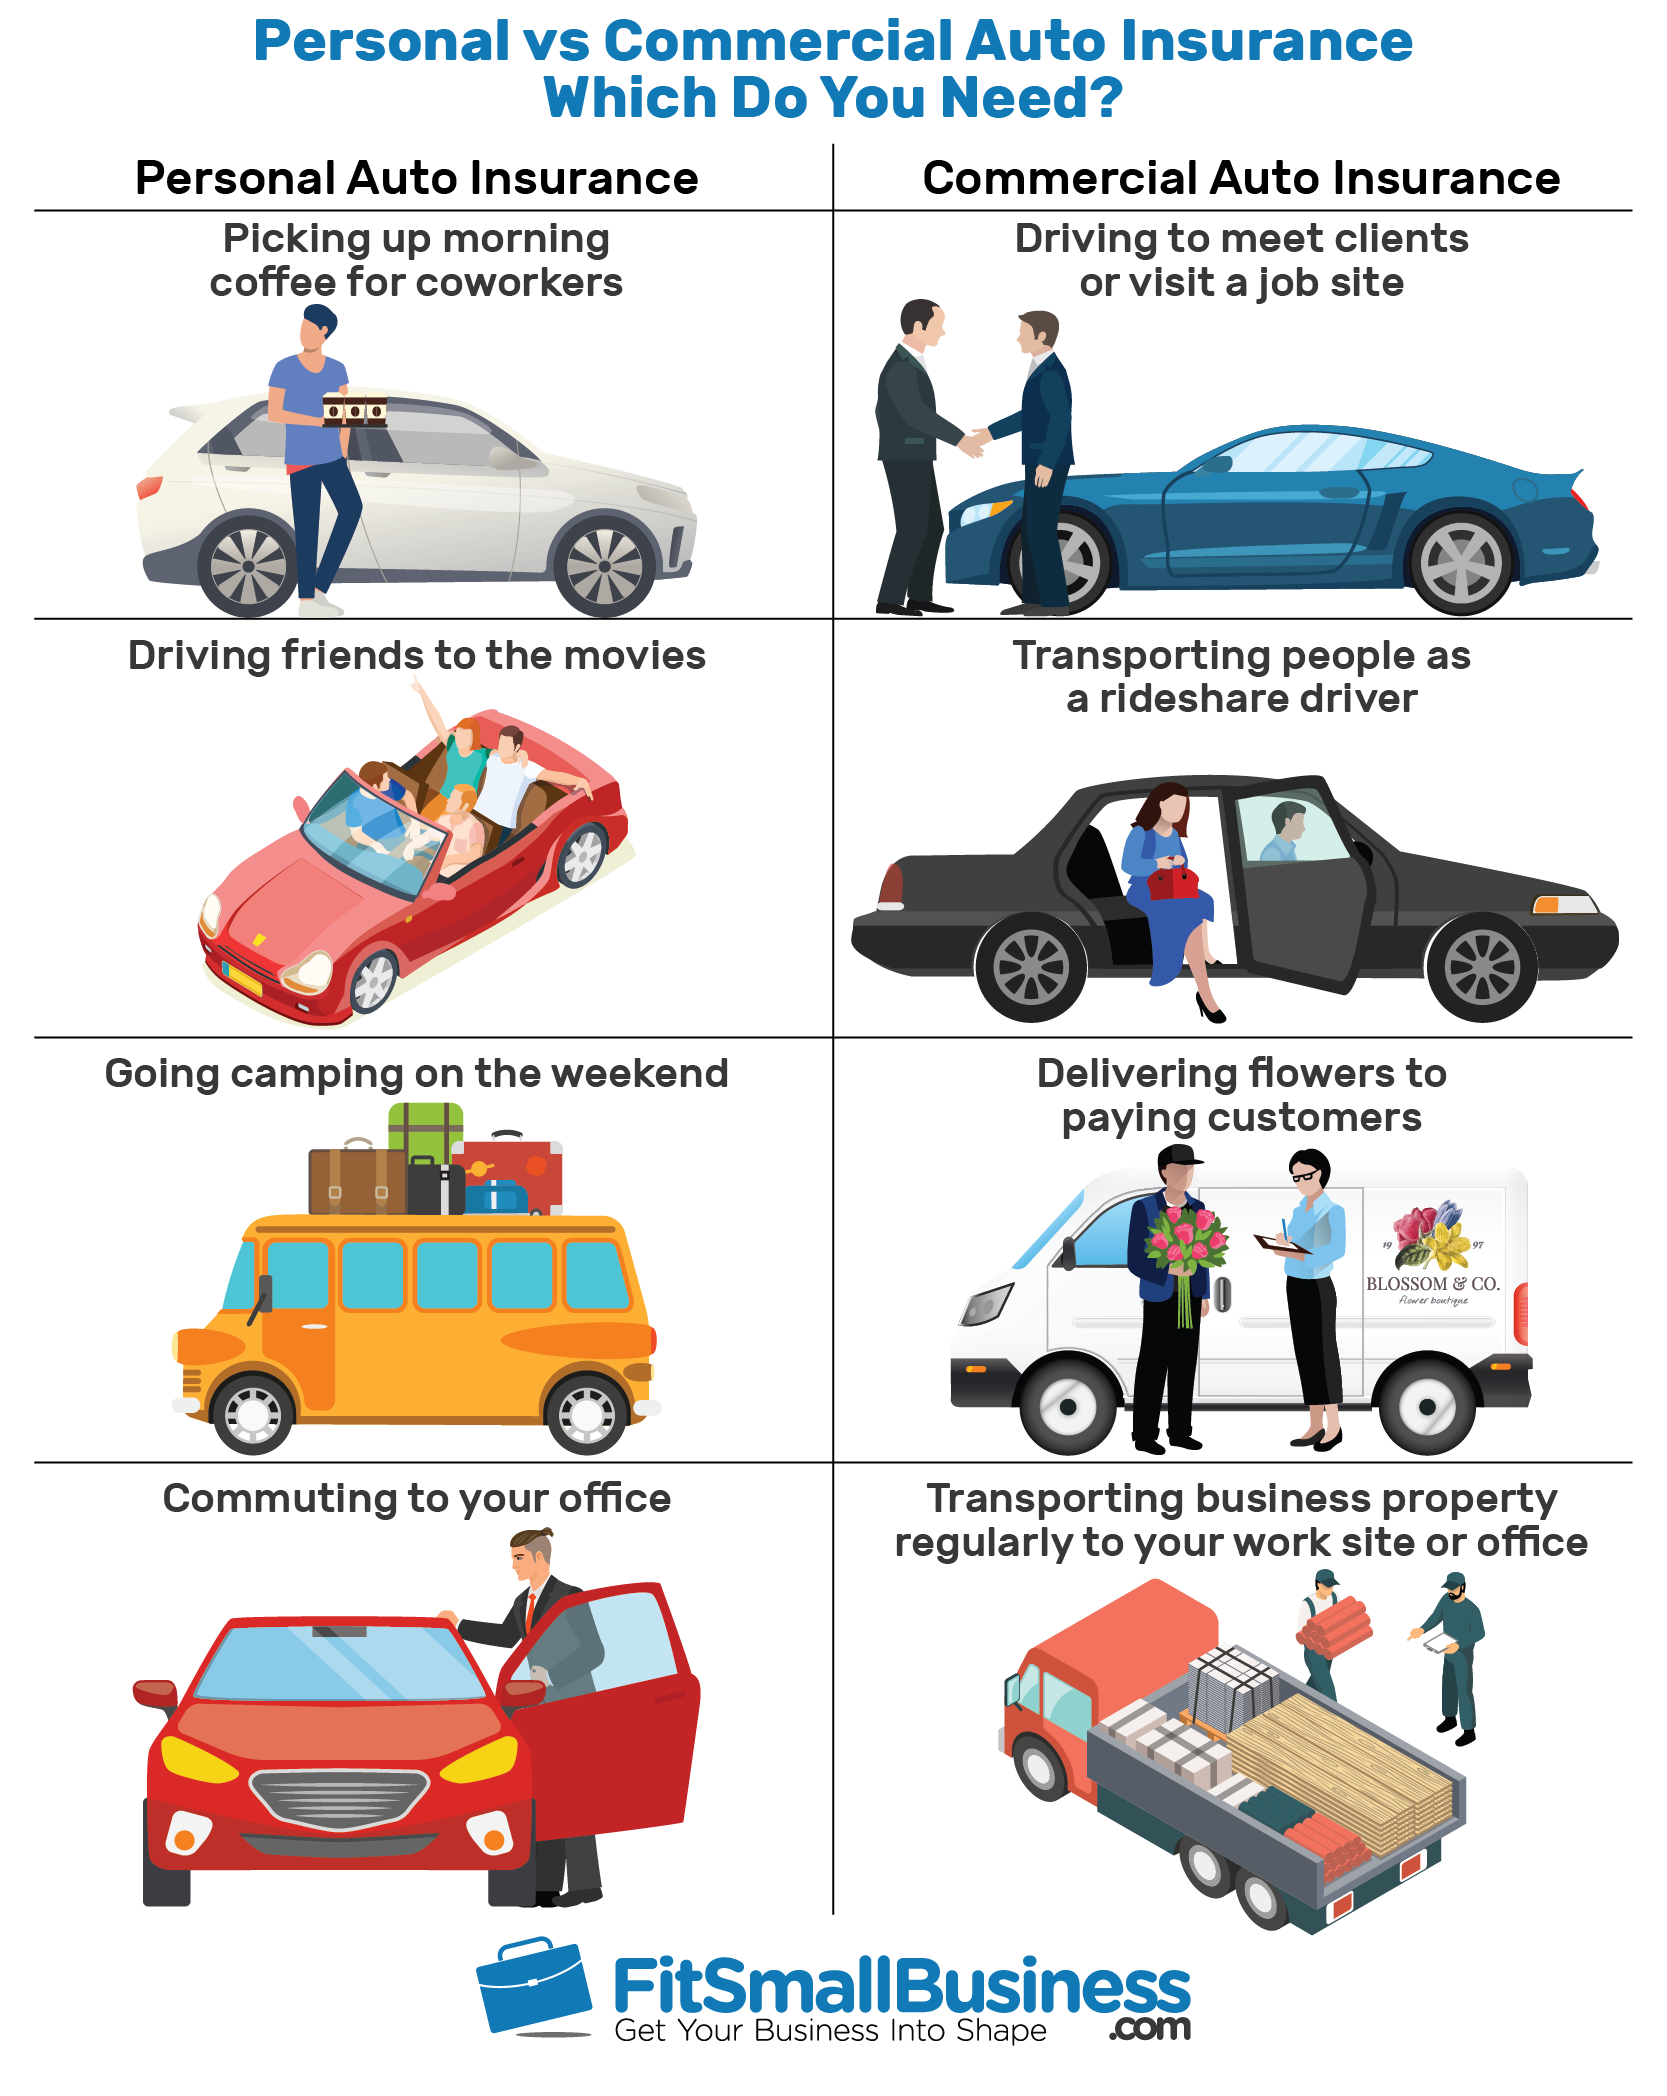 infographic showing the difference between personal and commercial auto insurance